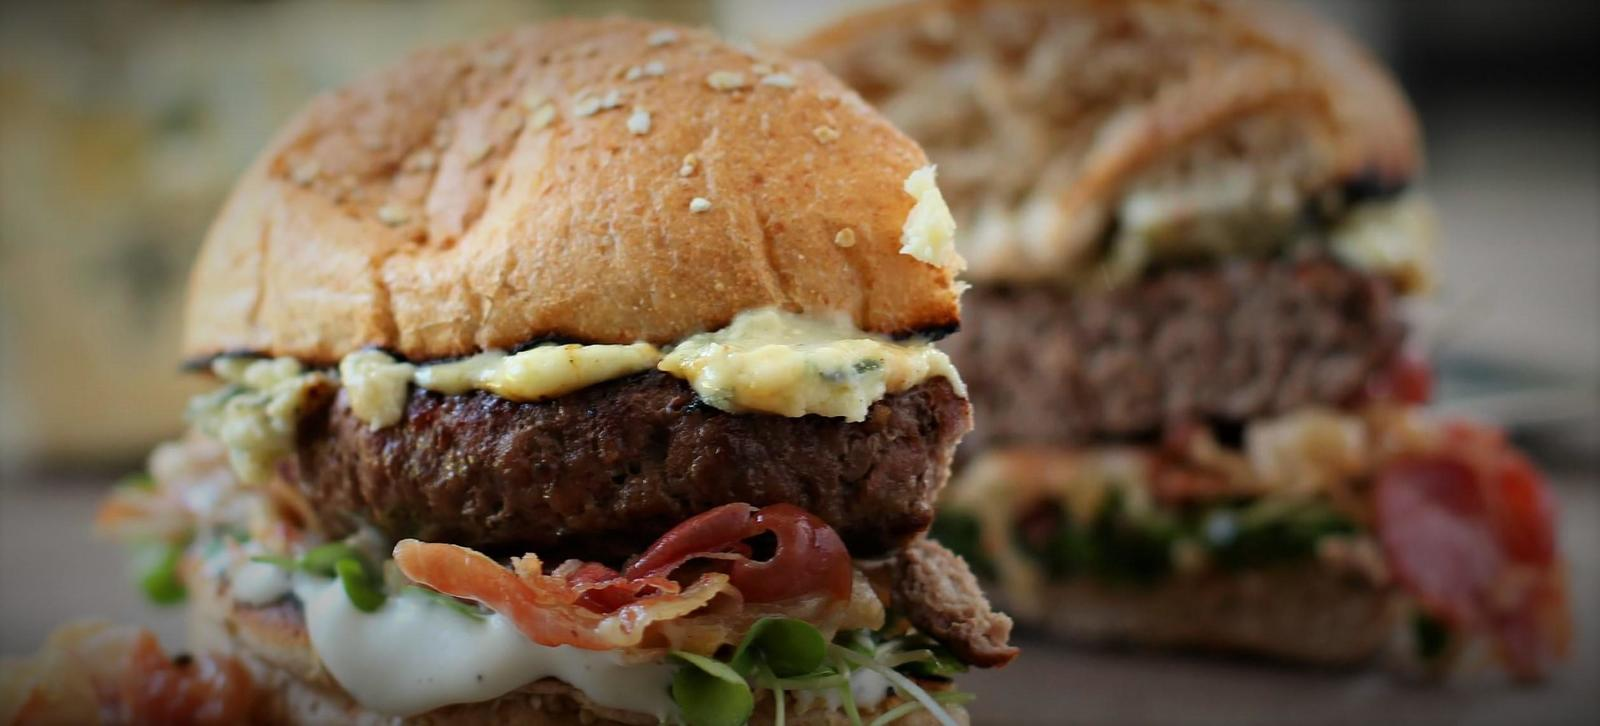 Burgers 101: Bleu Cheese Burger